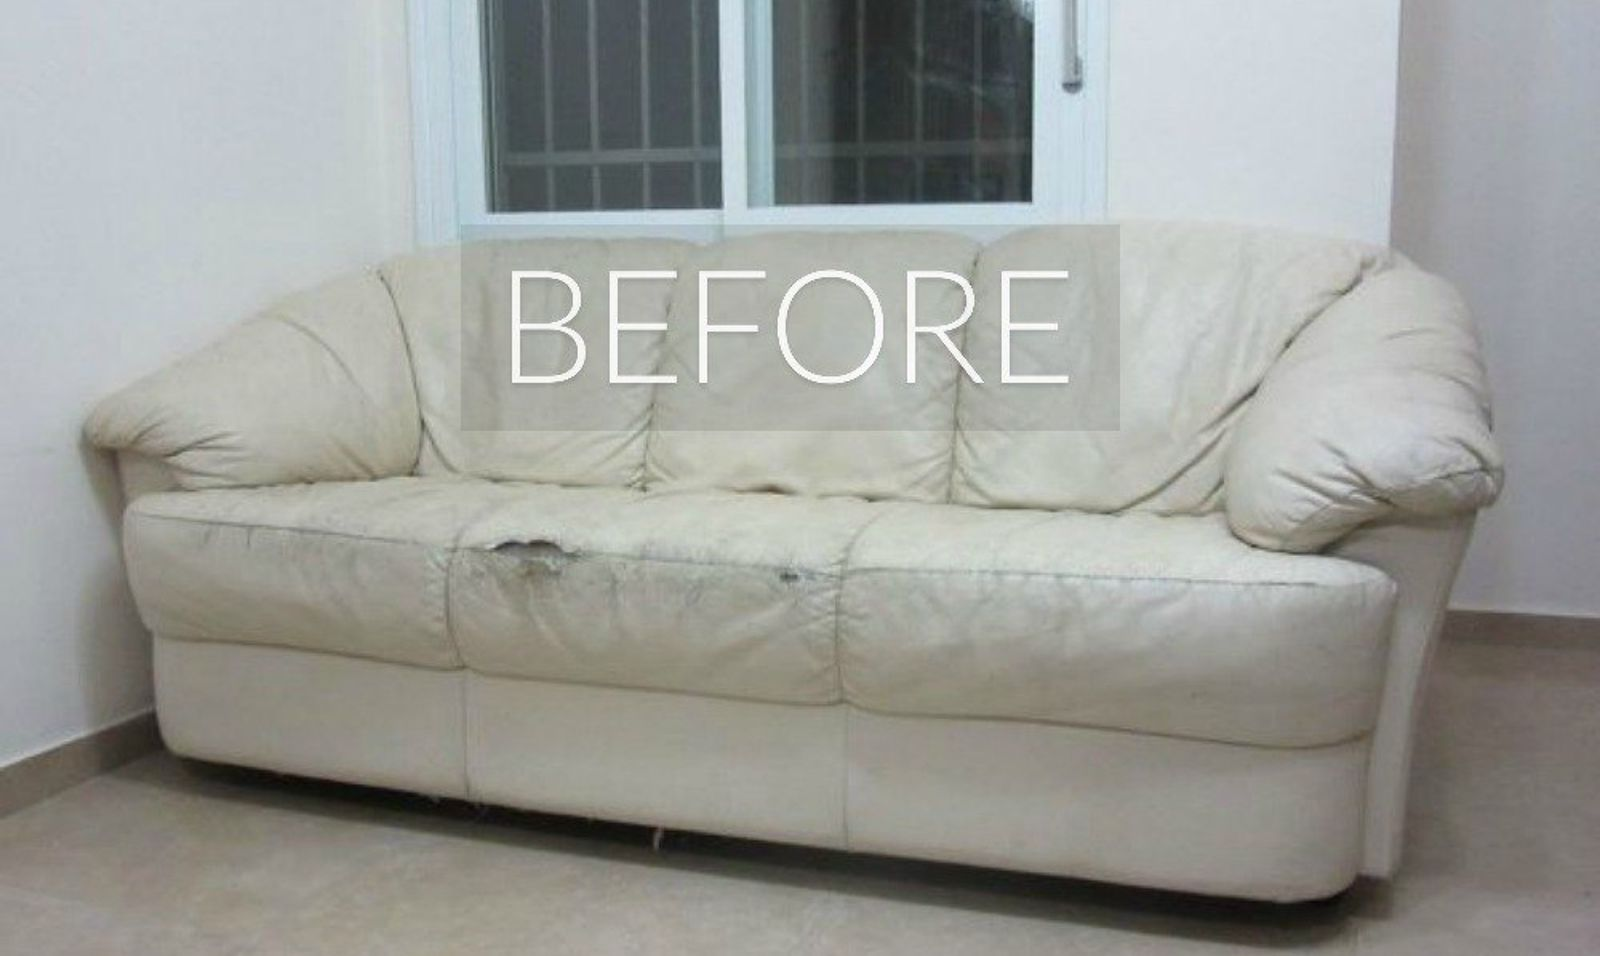 multi cindy crawford slipcover white sof beachside sofas natural missy sofa product home couches lr